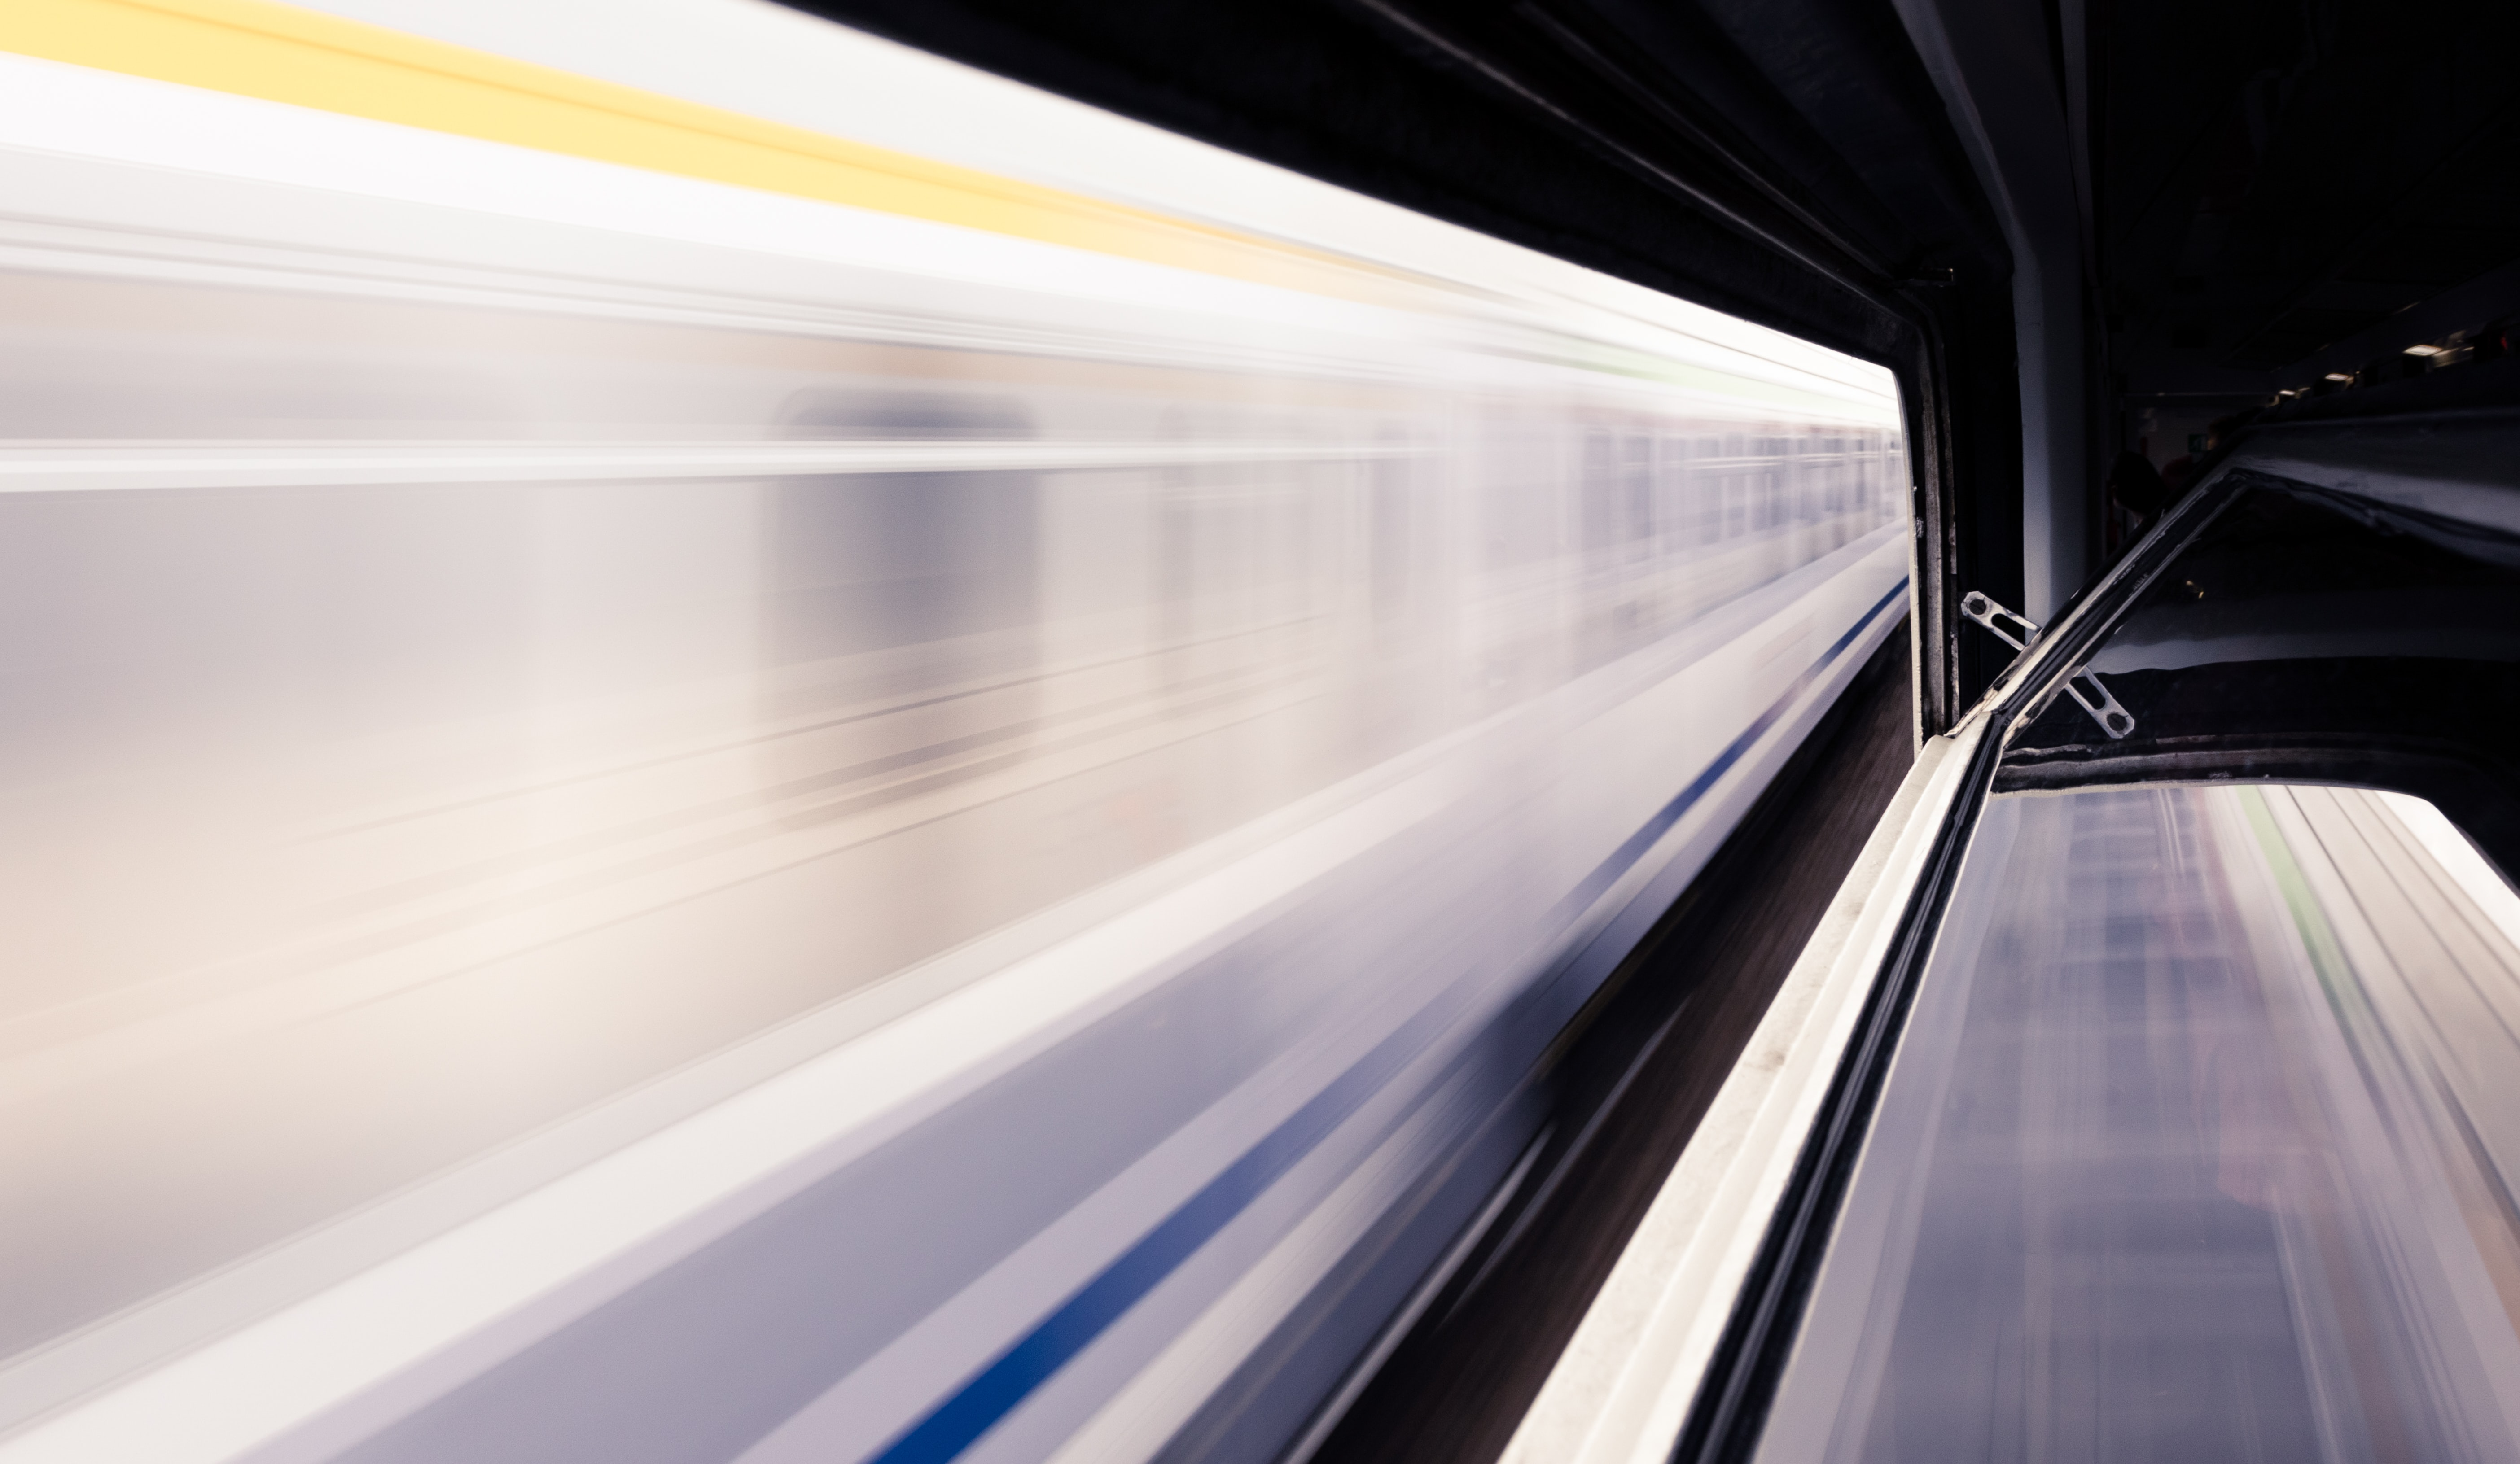 timelapse photo of white train and subway station